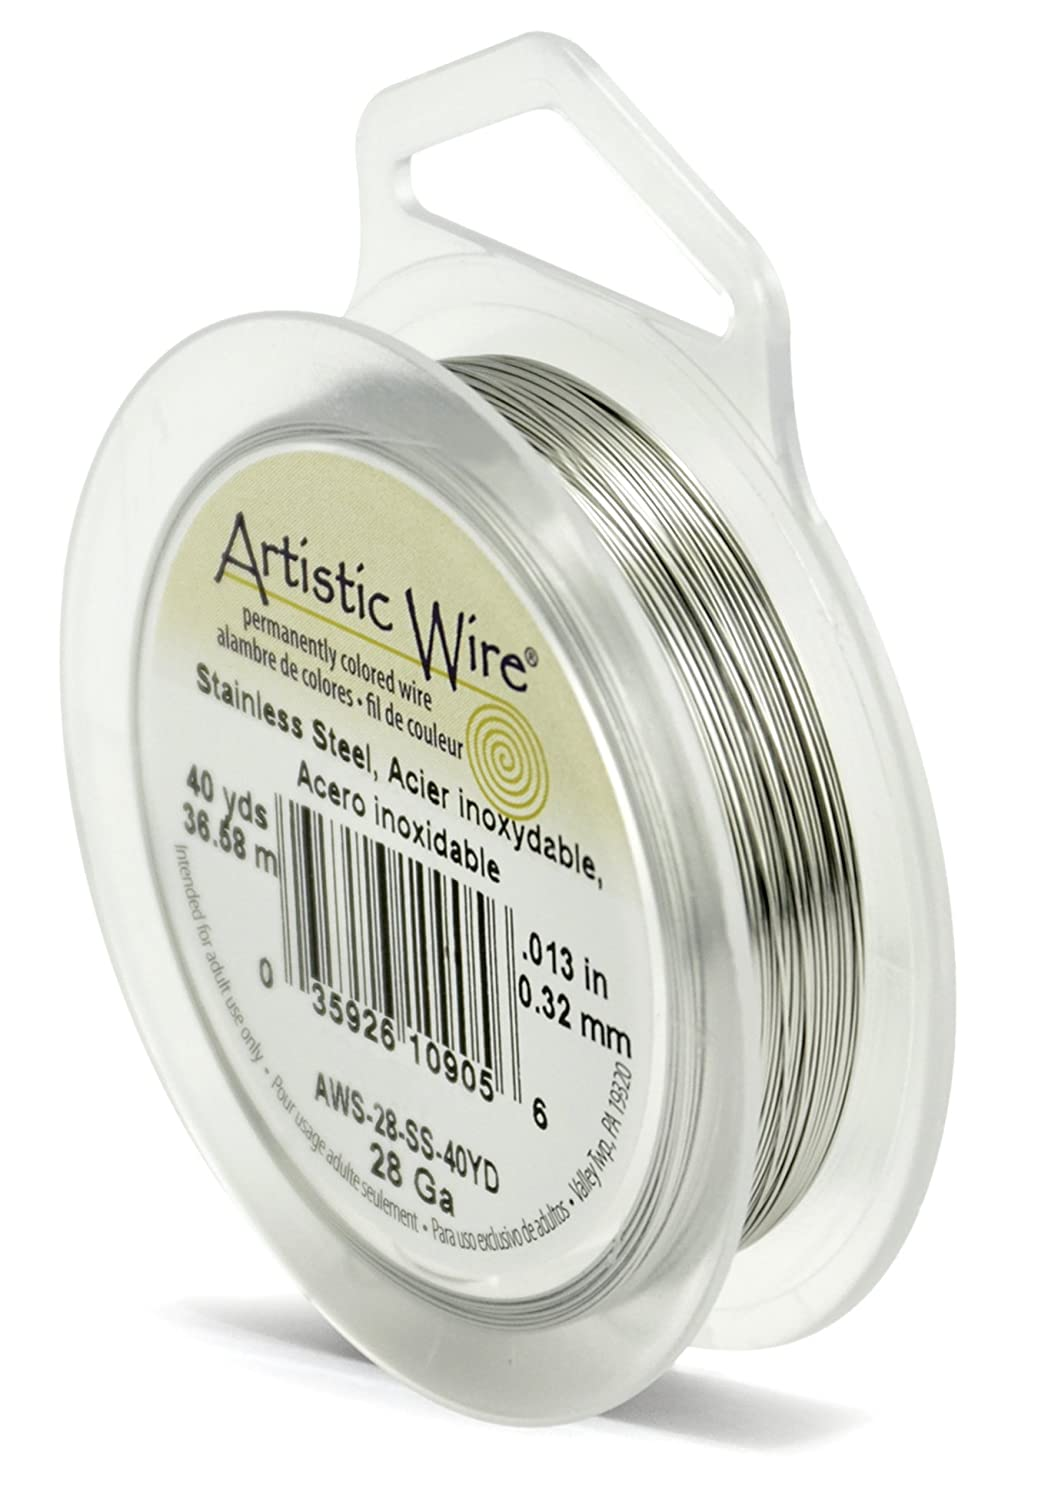 Amazon.com: Artistic Wire 28 Gauge, Stainless Steel, 40 Yard